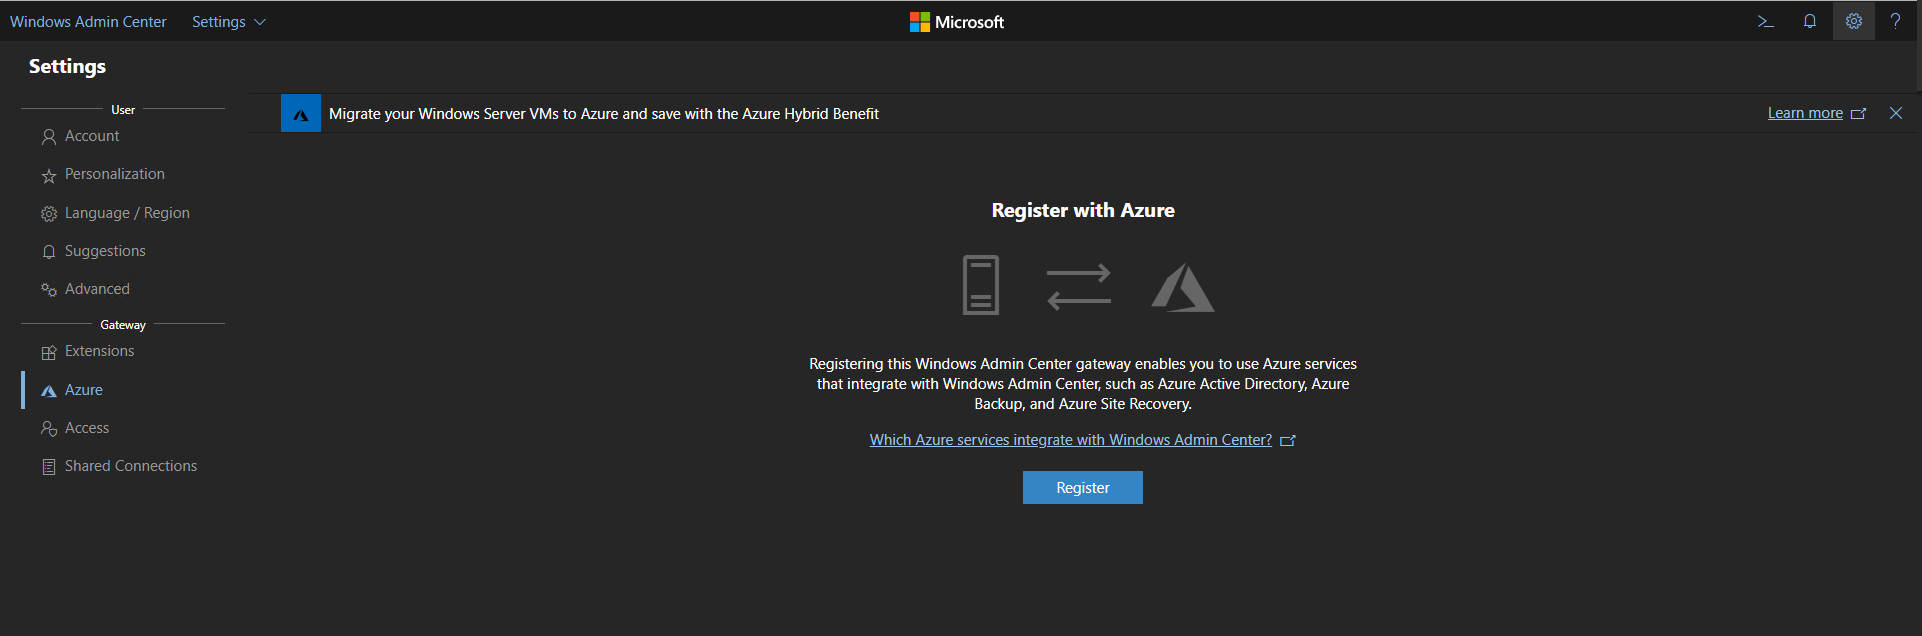 How to Connect Windows Admin Center with Azure